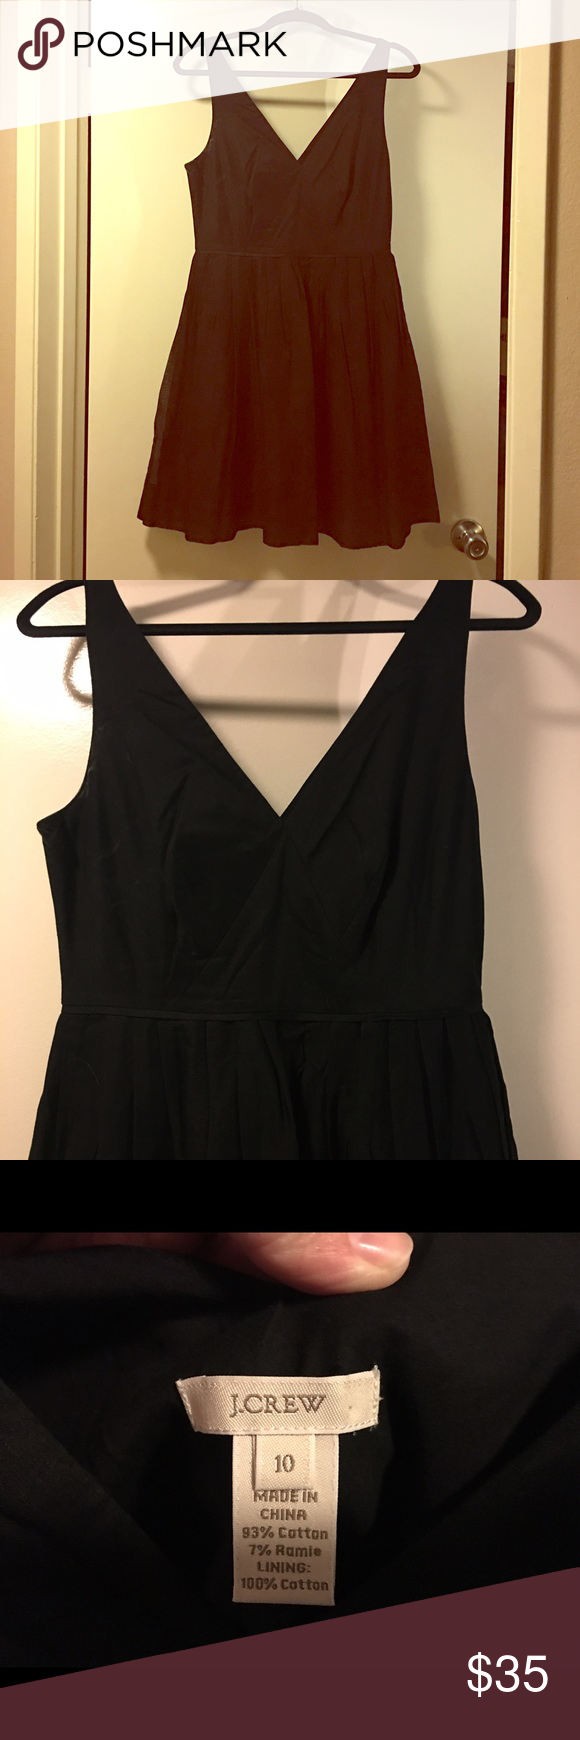 J Crew LBD Little black J Crew dress, size 10. Sleeveless, v-neck, pleated and hits at natural waist. Never worn, but tags have been removed. J. Crew Dresses Midi